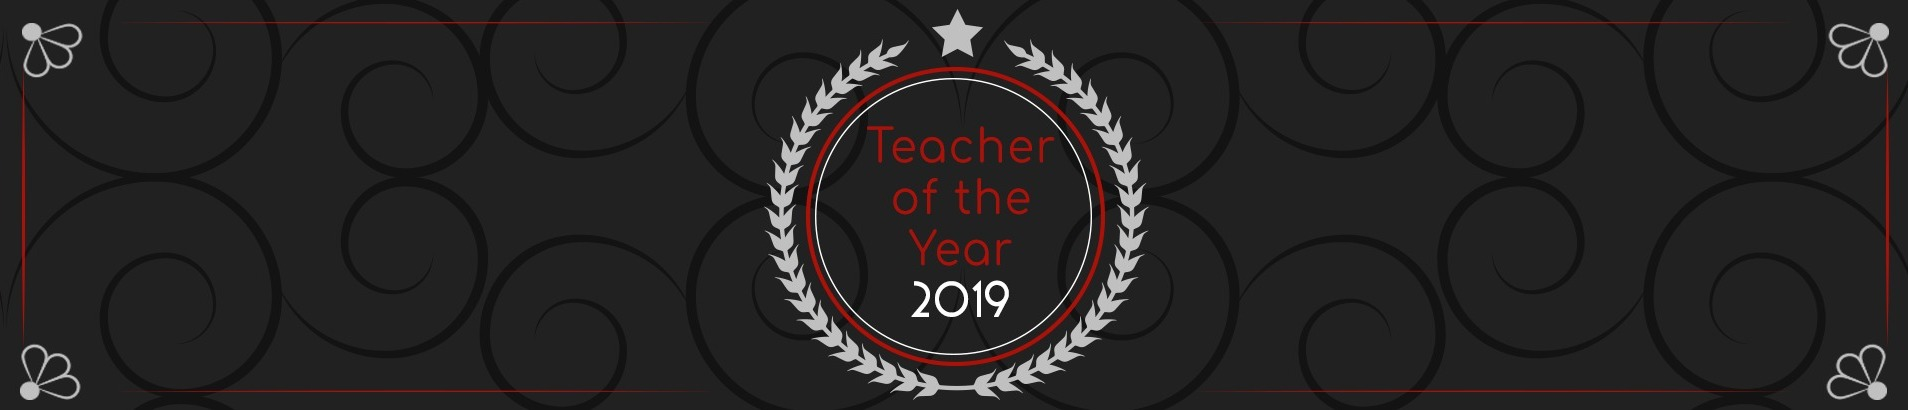 black background with white wreath and star, text inside of circle reads: Teacher of the year 2019